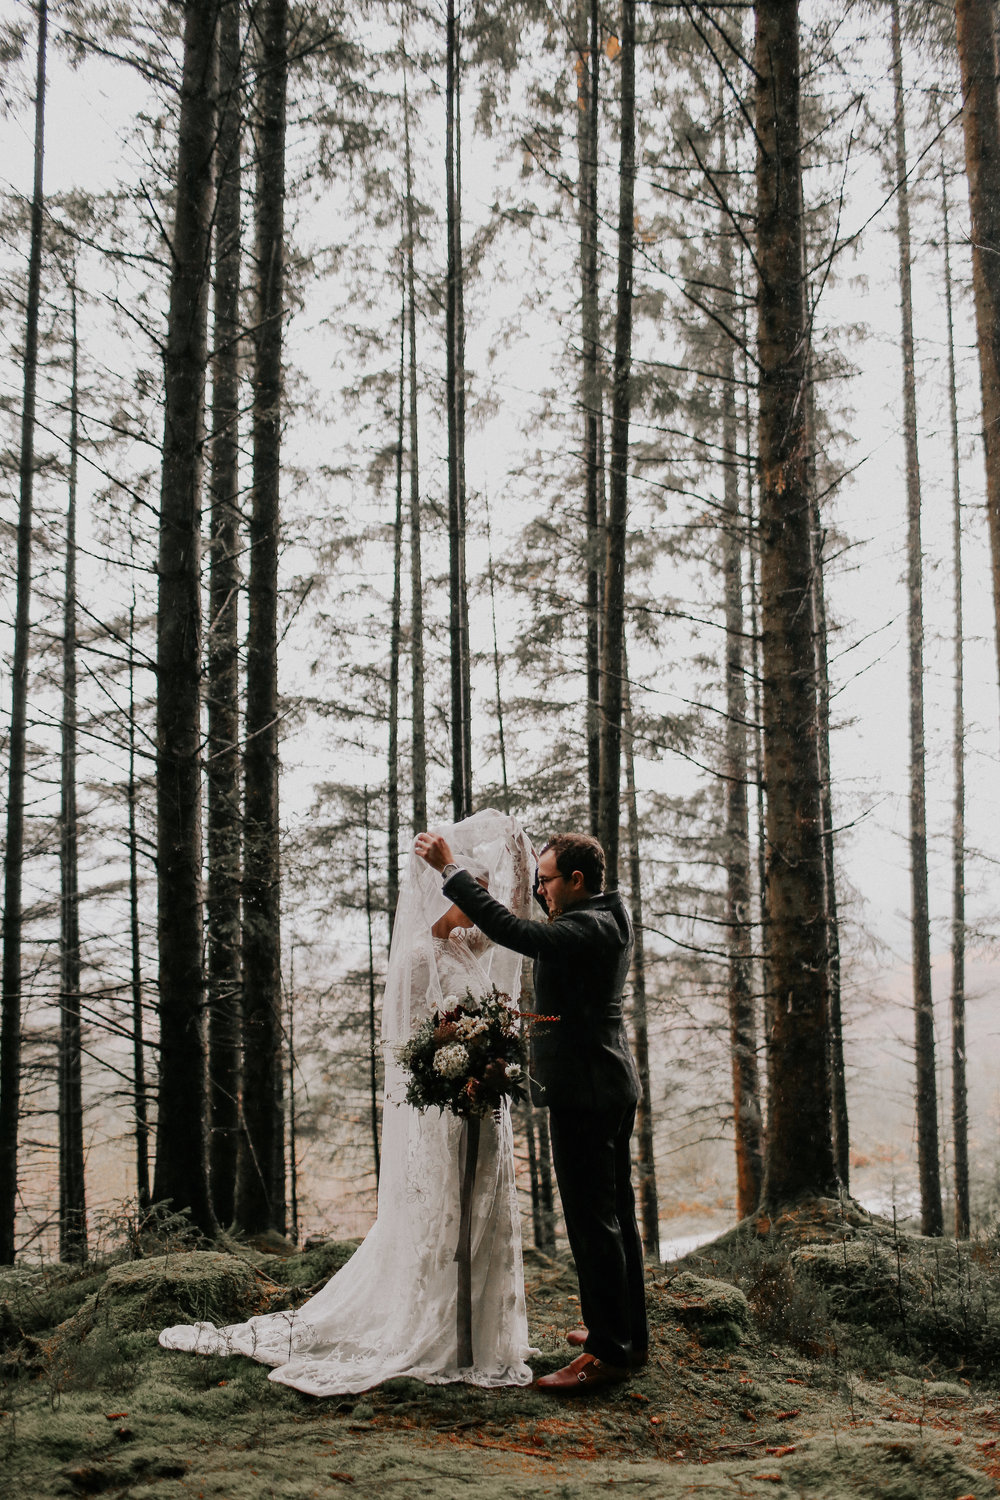 Scotland_Elopement_Melissa_Marshall_Photography_35.jpg